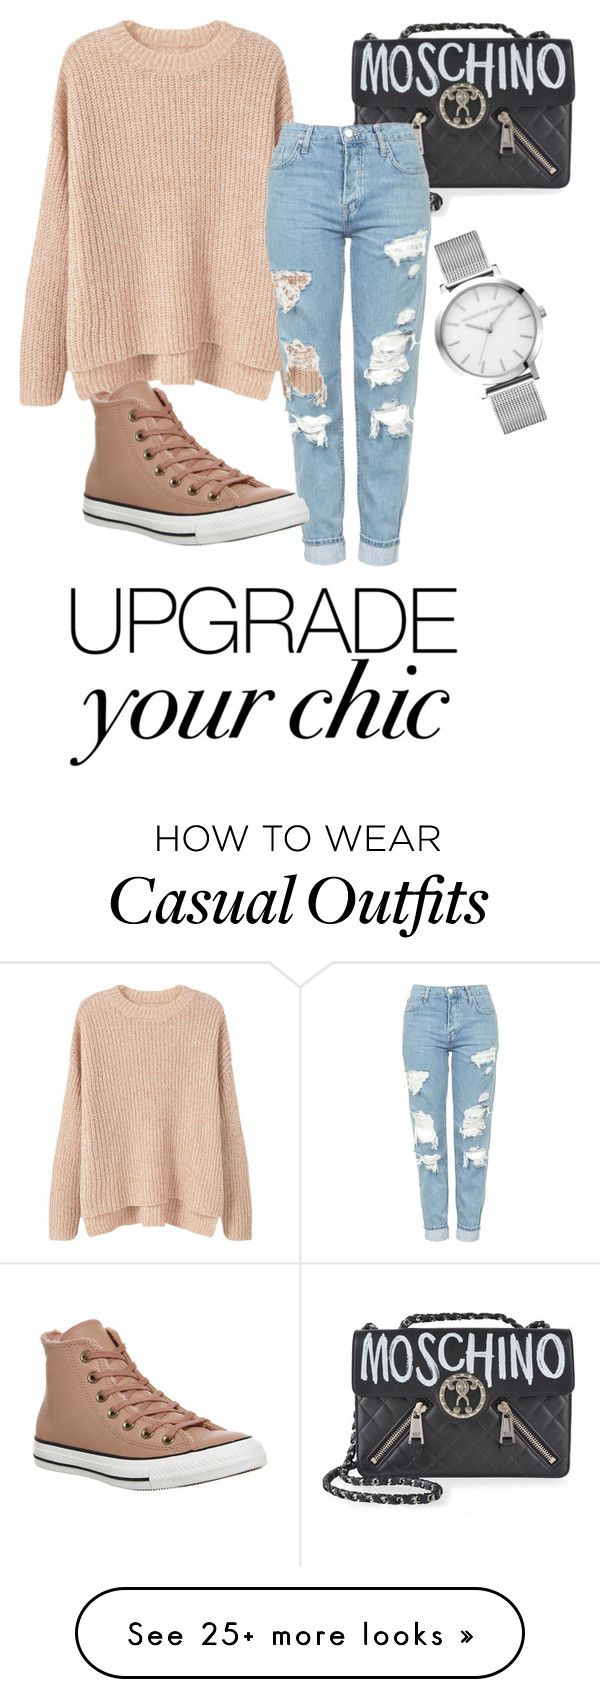 """Street Casual"" by shoelover12 on Polyvore featuring MANGO, Moschino, Topshop and Converse"